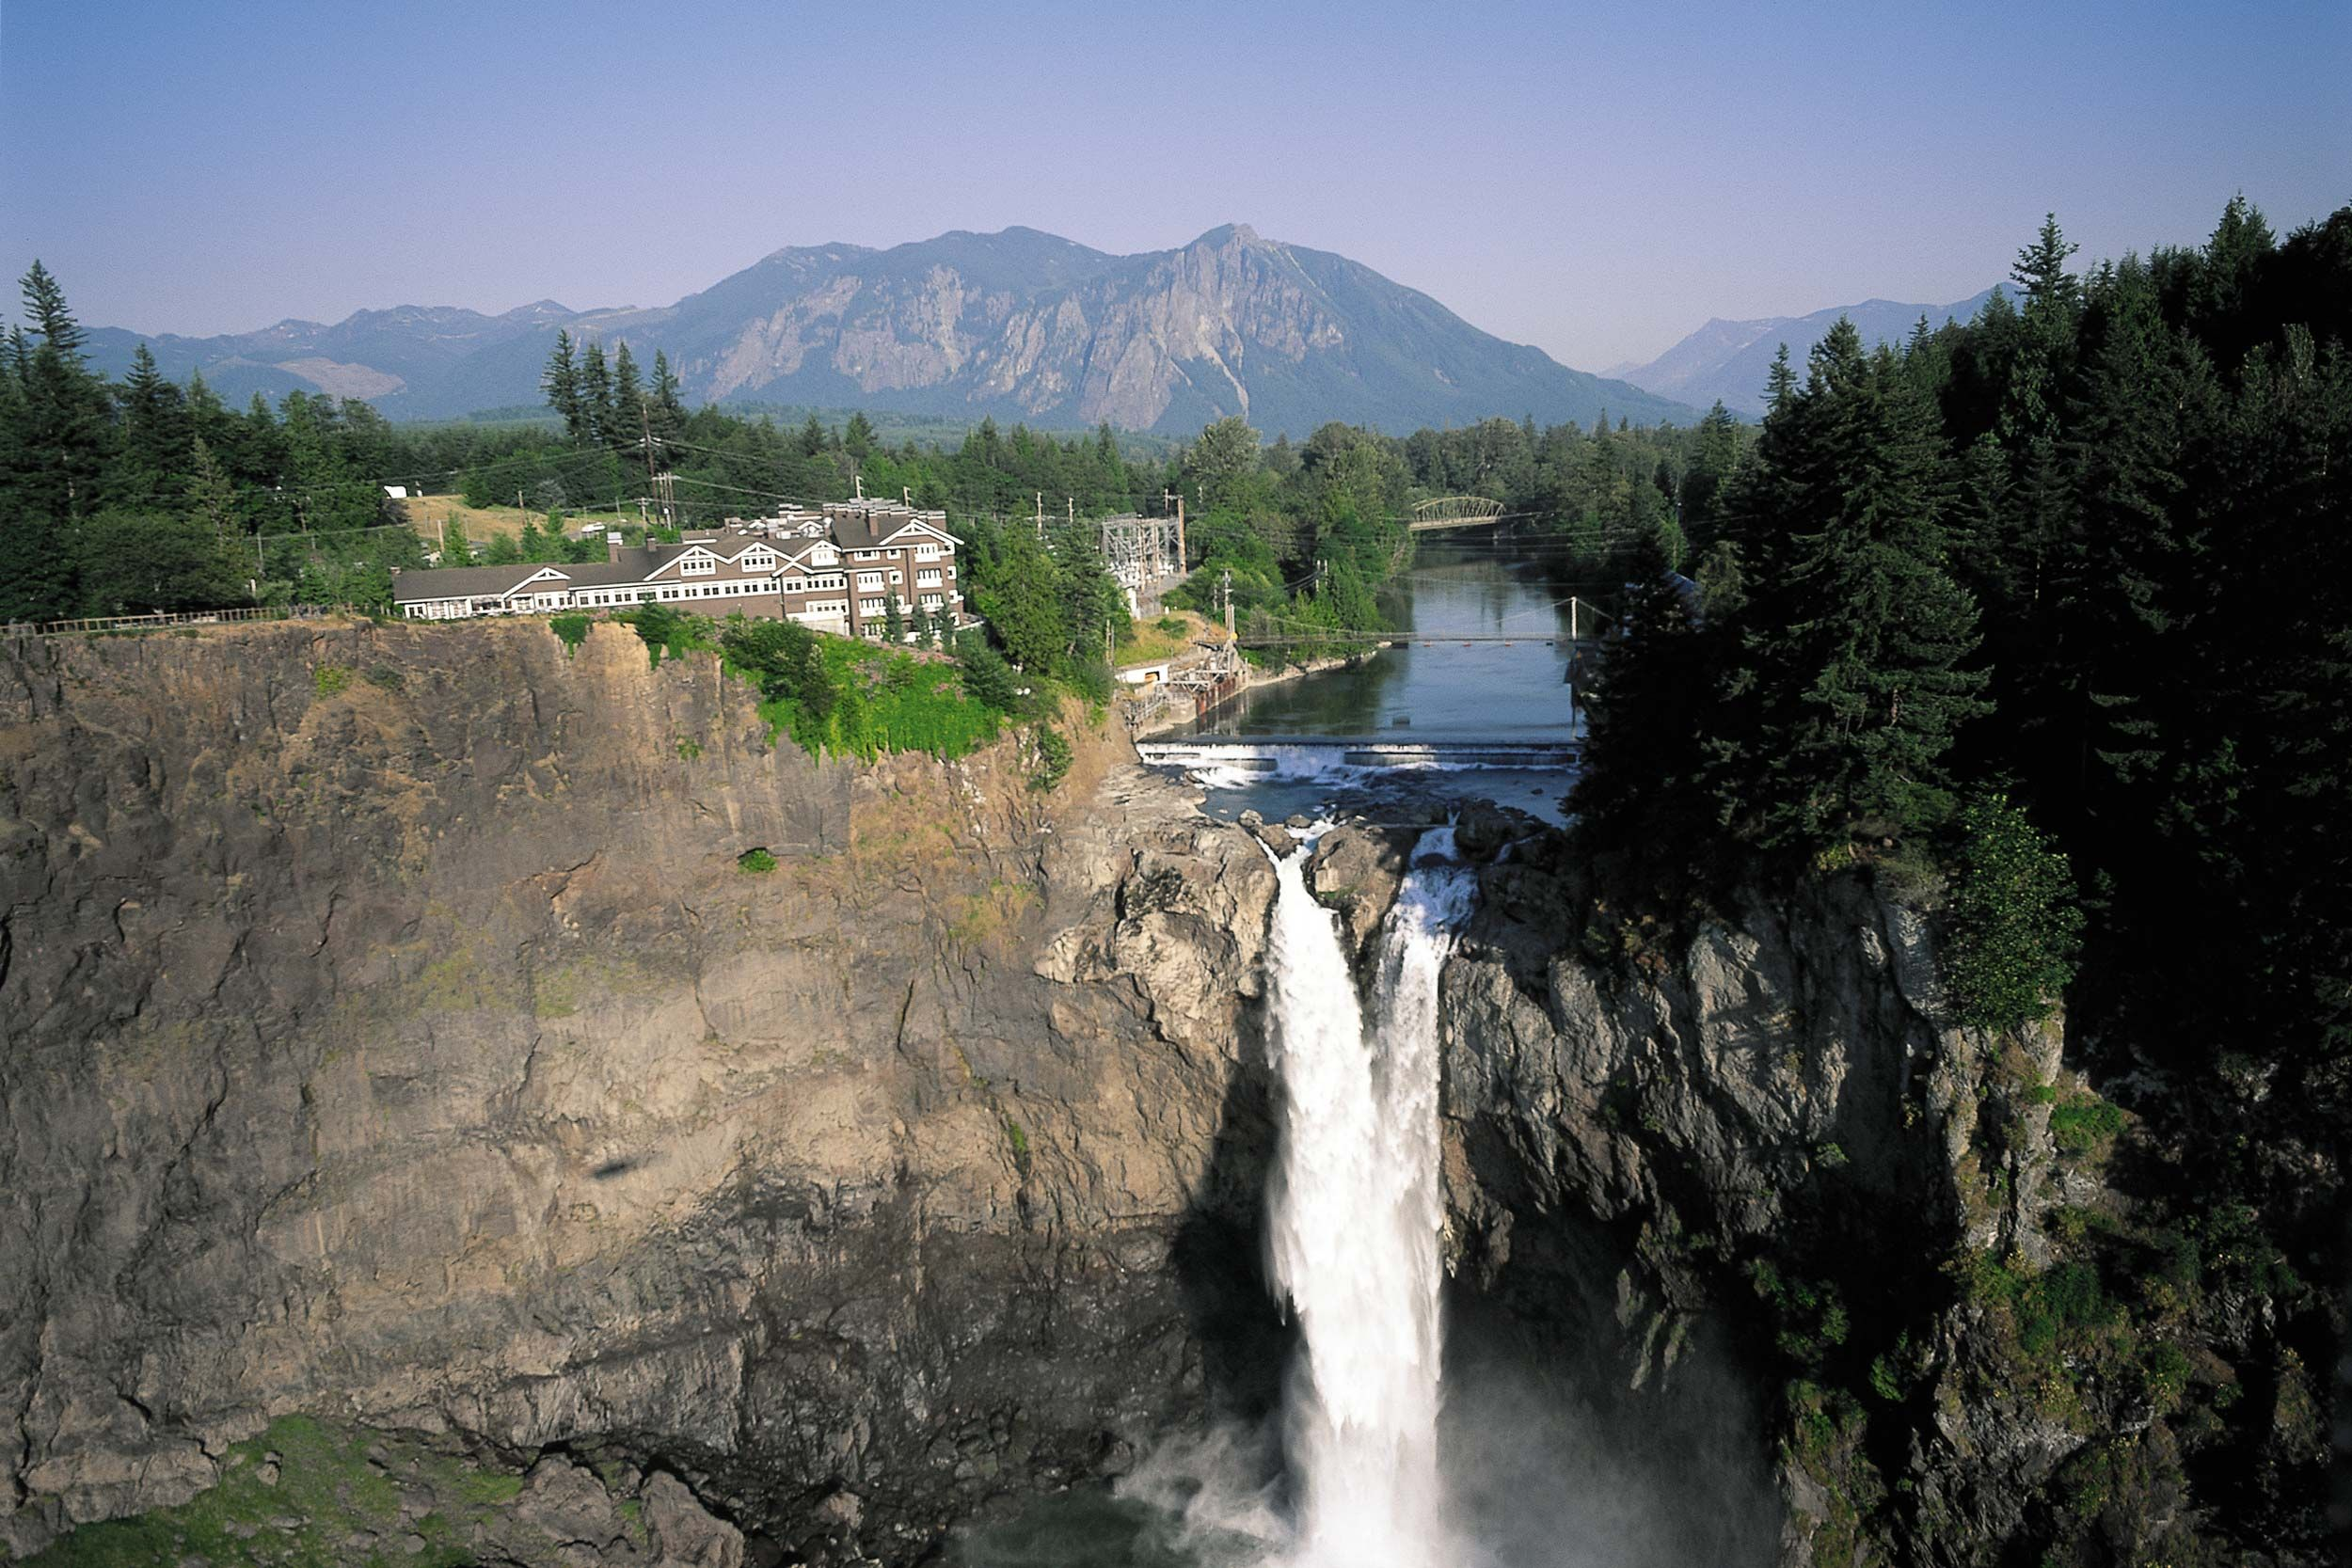 Salish Lodge Spa Seattle S Premiere Luxury Hotel Resort Overlooks Snoqualmie Falls In Washington State Contact